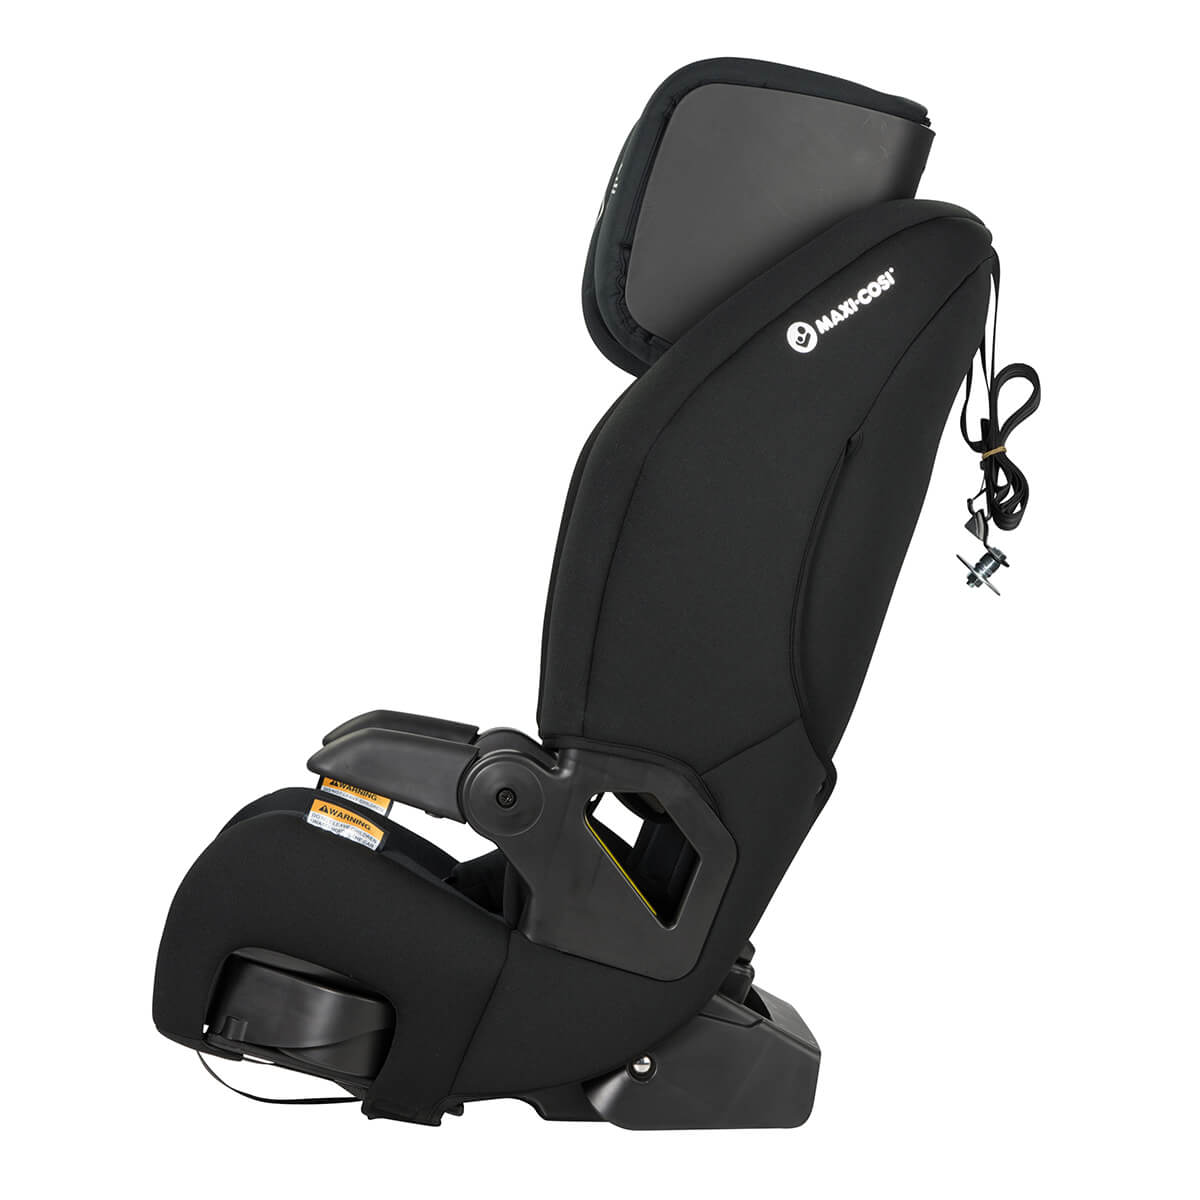 luna smart booster seat - recline comfort